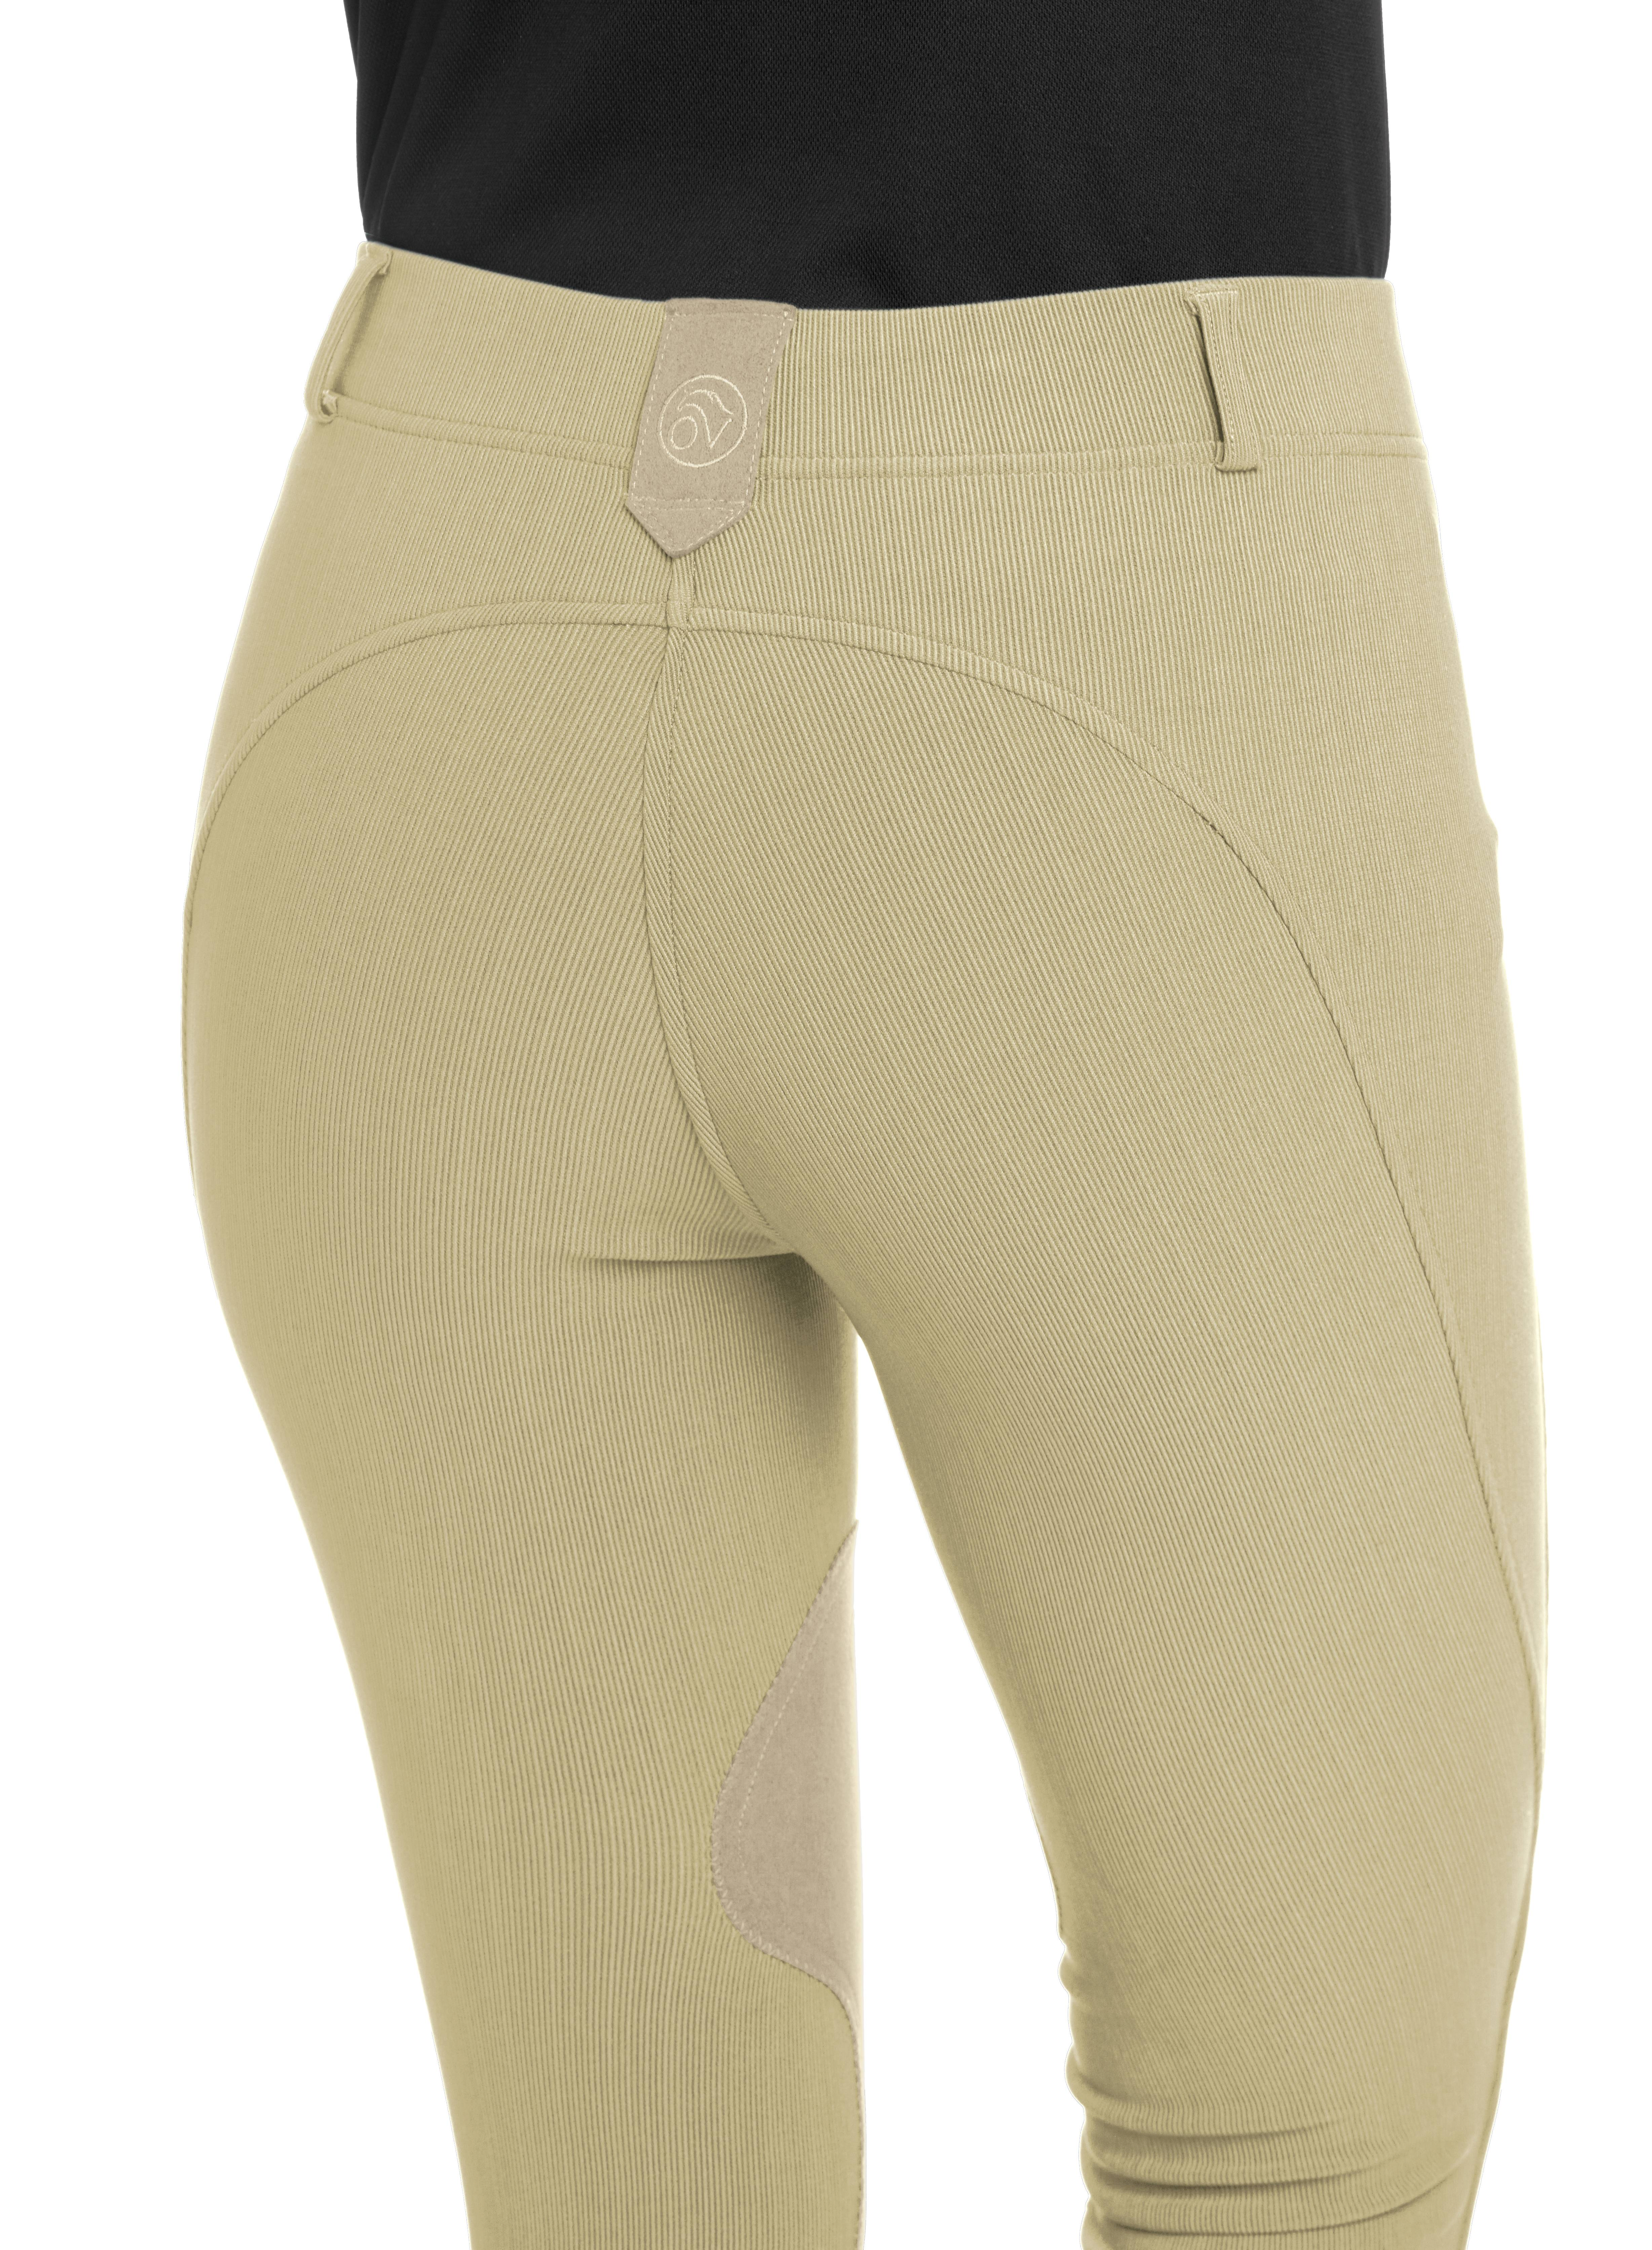 Ovation Ladies Athletica Euro Seat Rider Tights